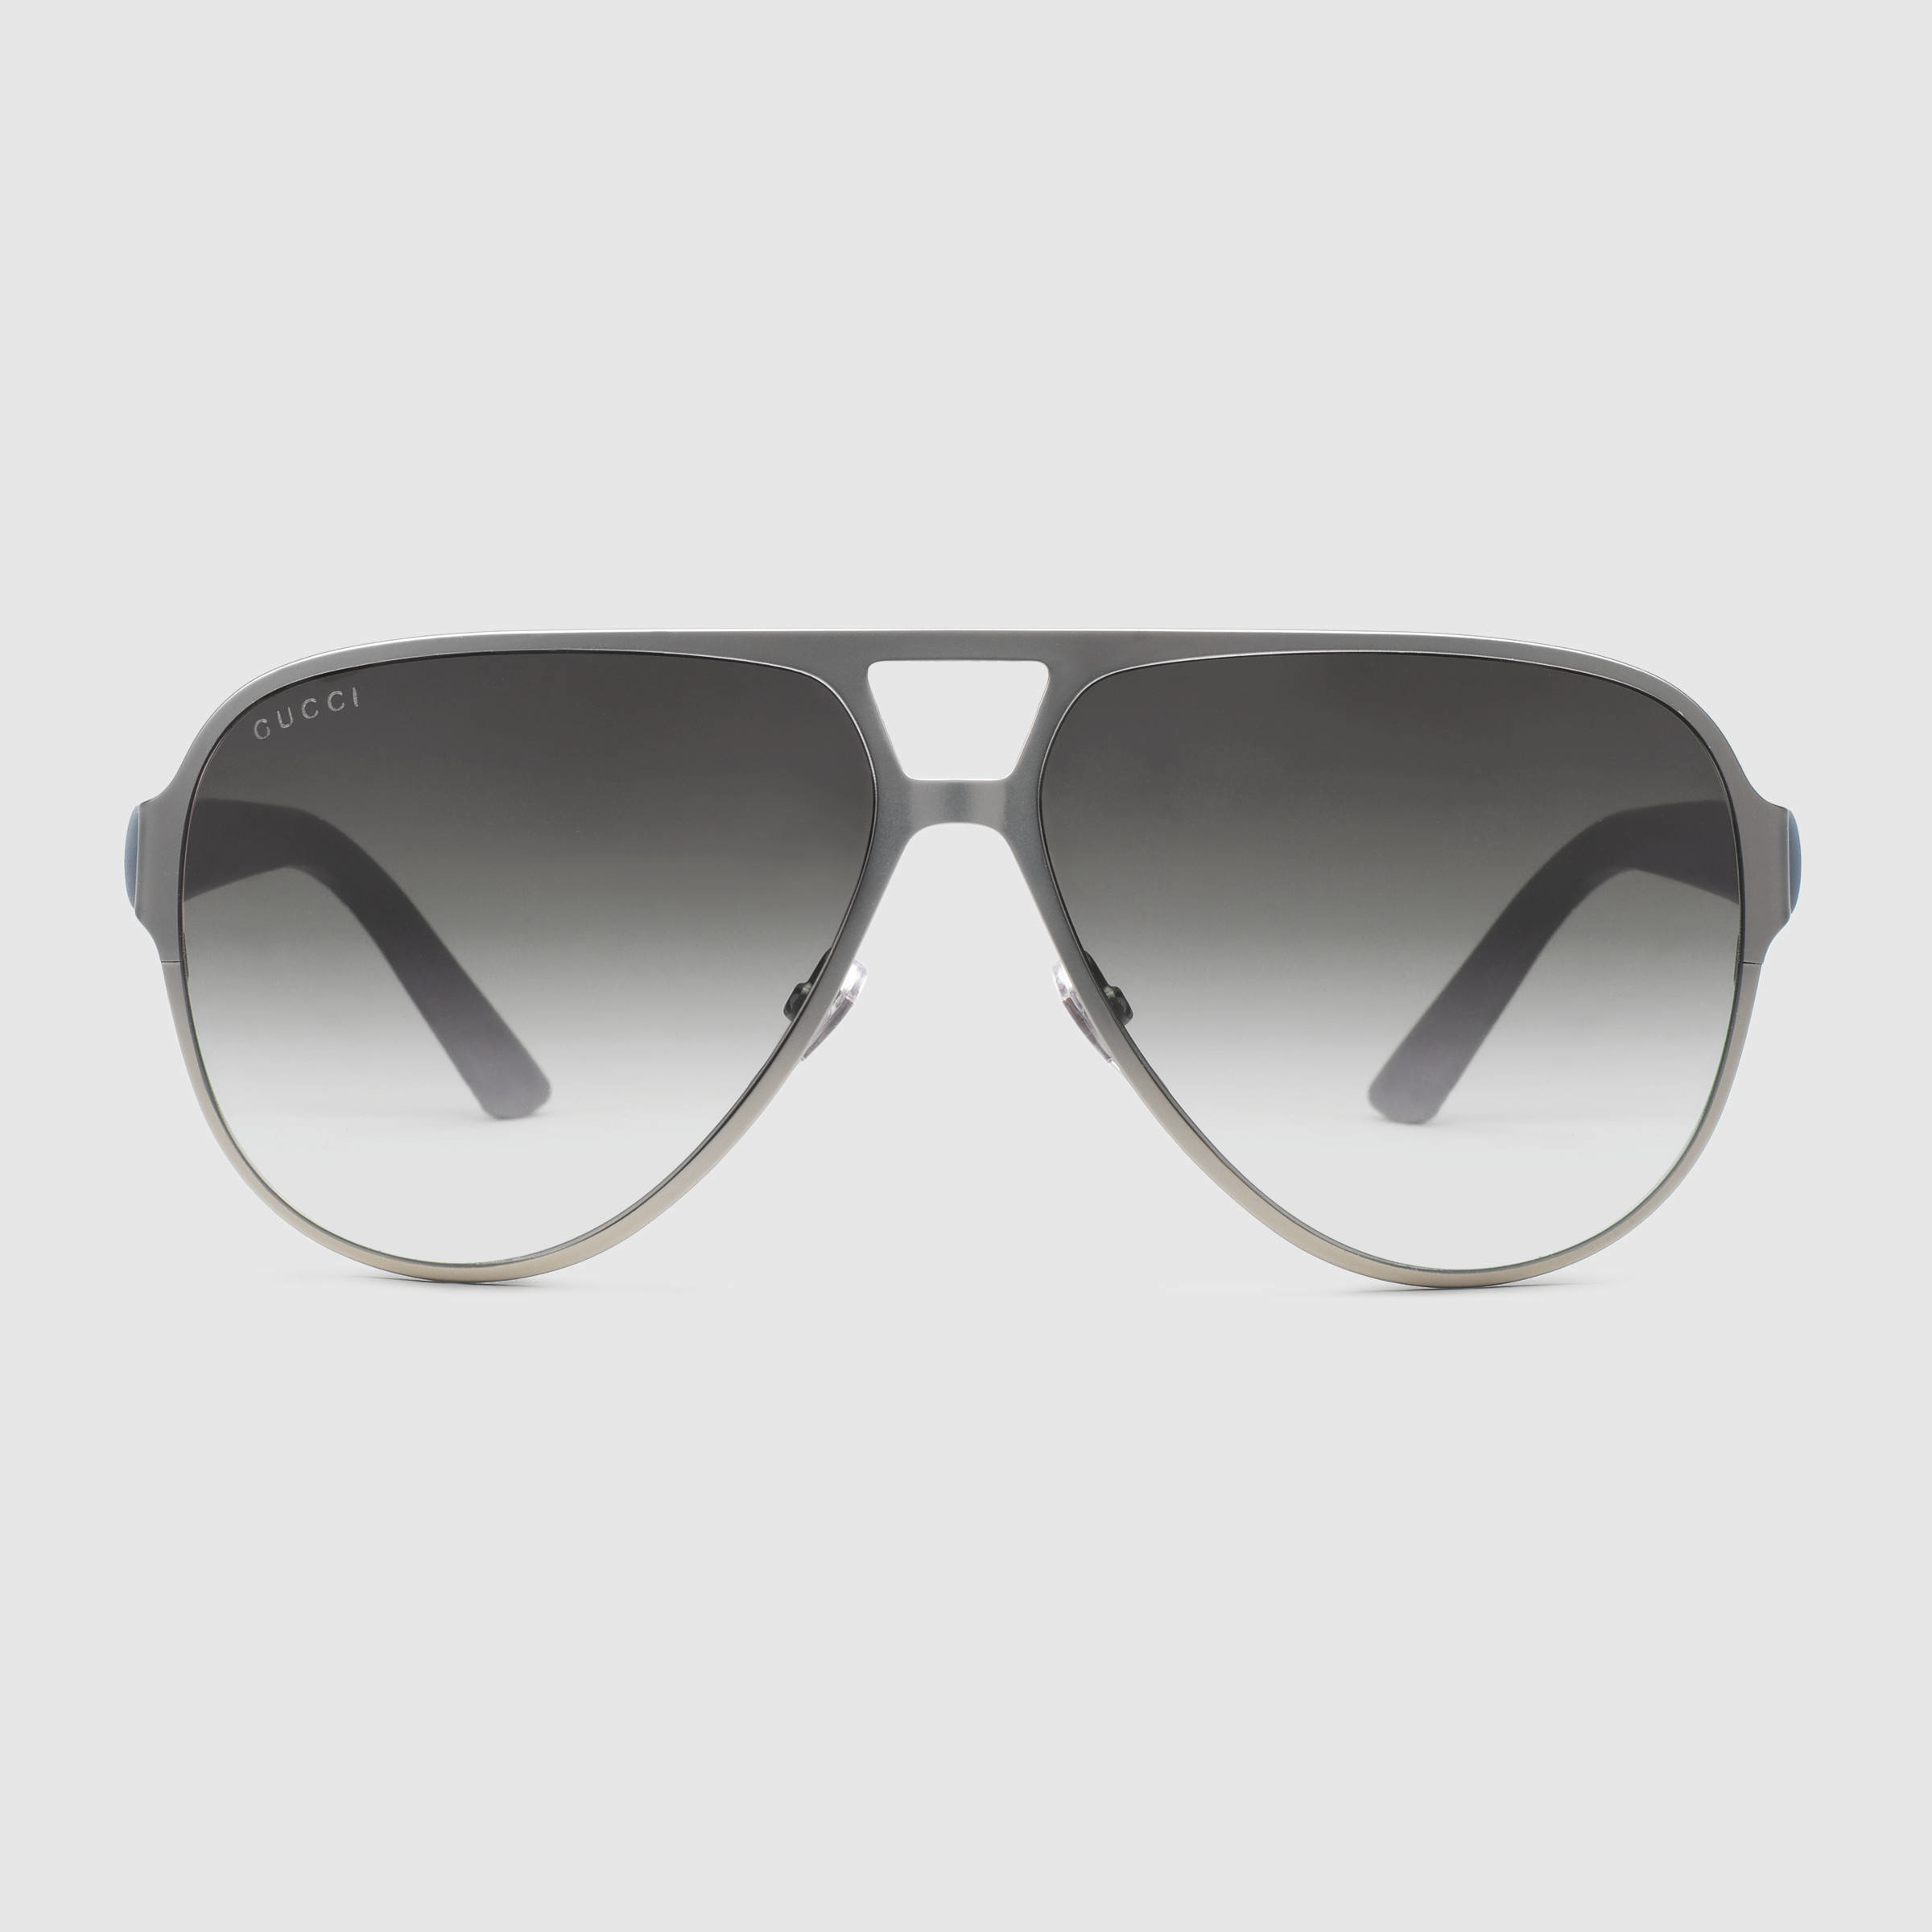 af170ab4bb1 Lyst - Gucci Light Steel Aviator Sunglasses in Gray for Men